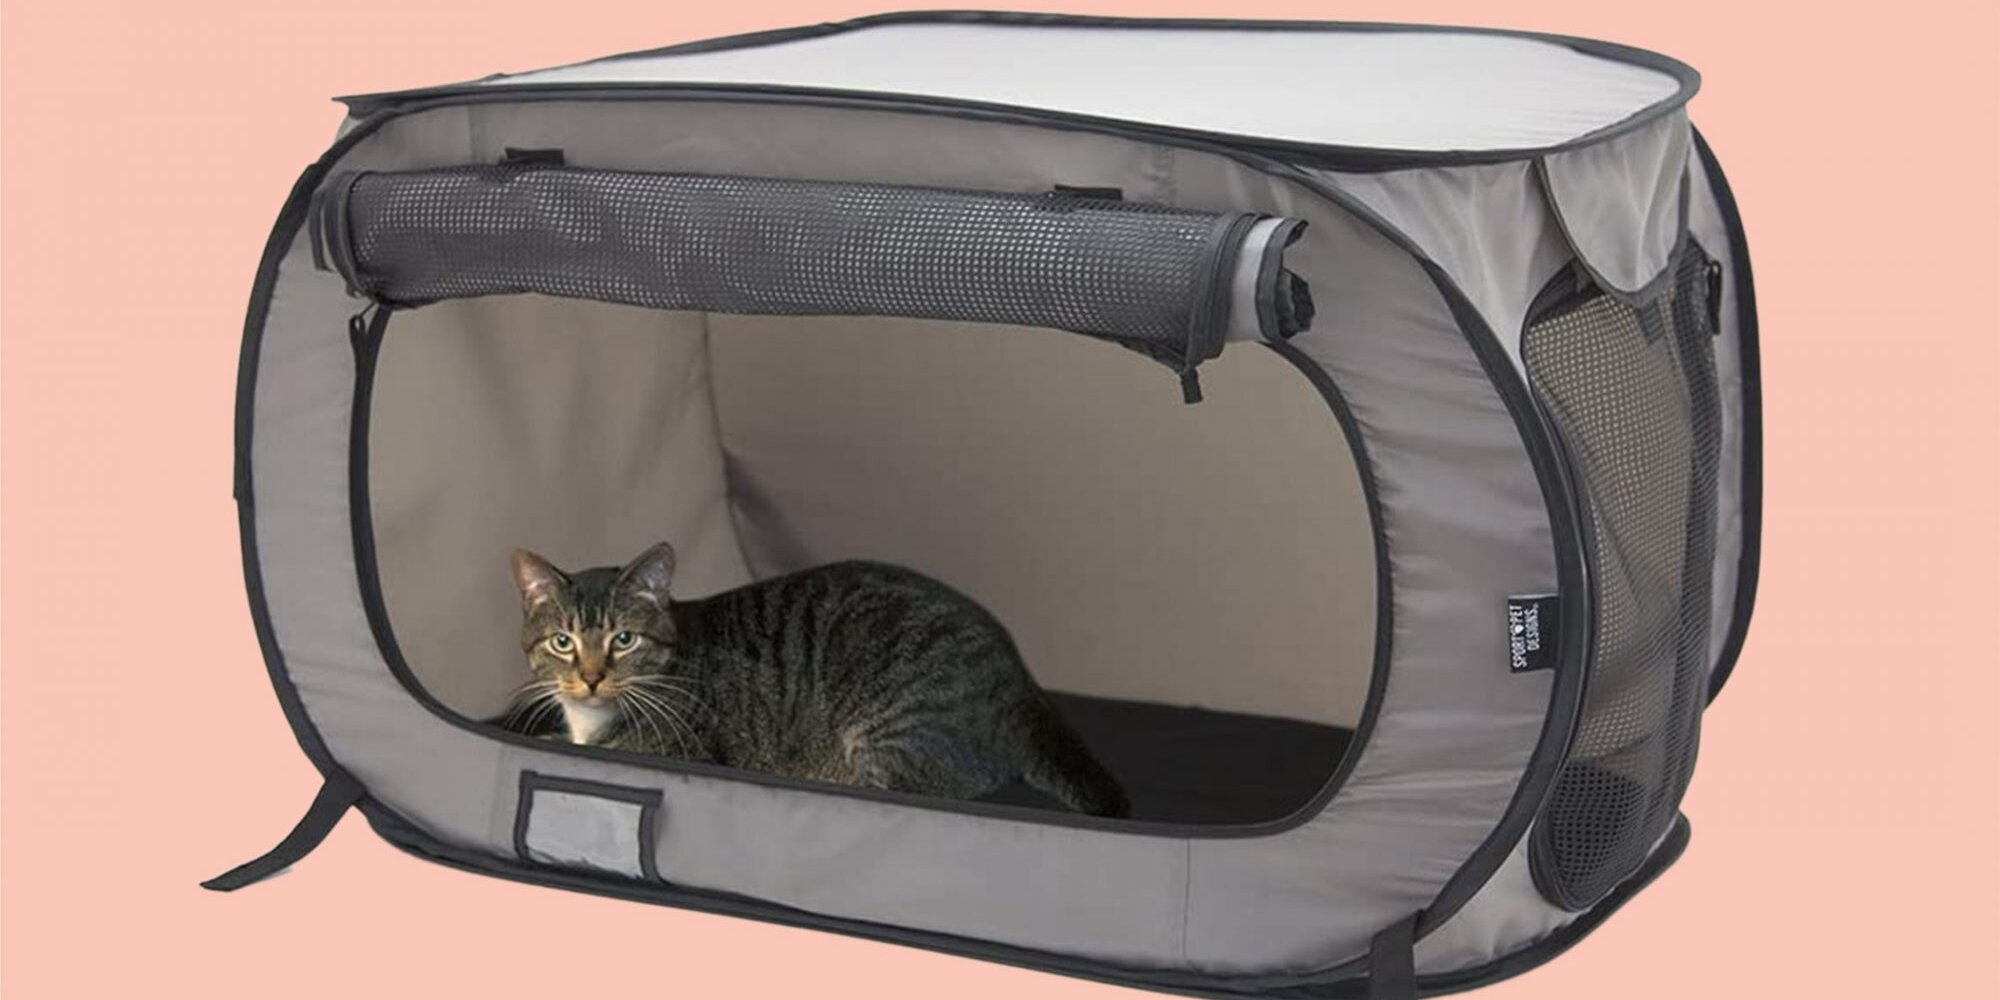 10 Cat Kennels That Will Keep Your Feline Friend Calm, Comfortable, and Safe